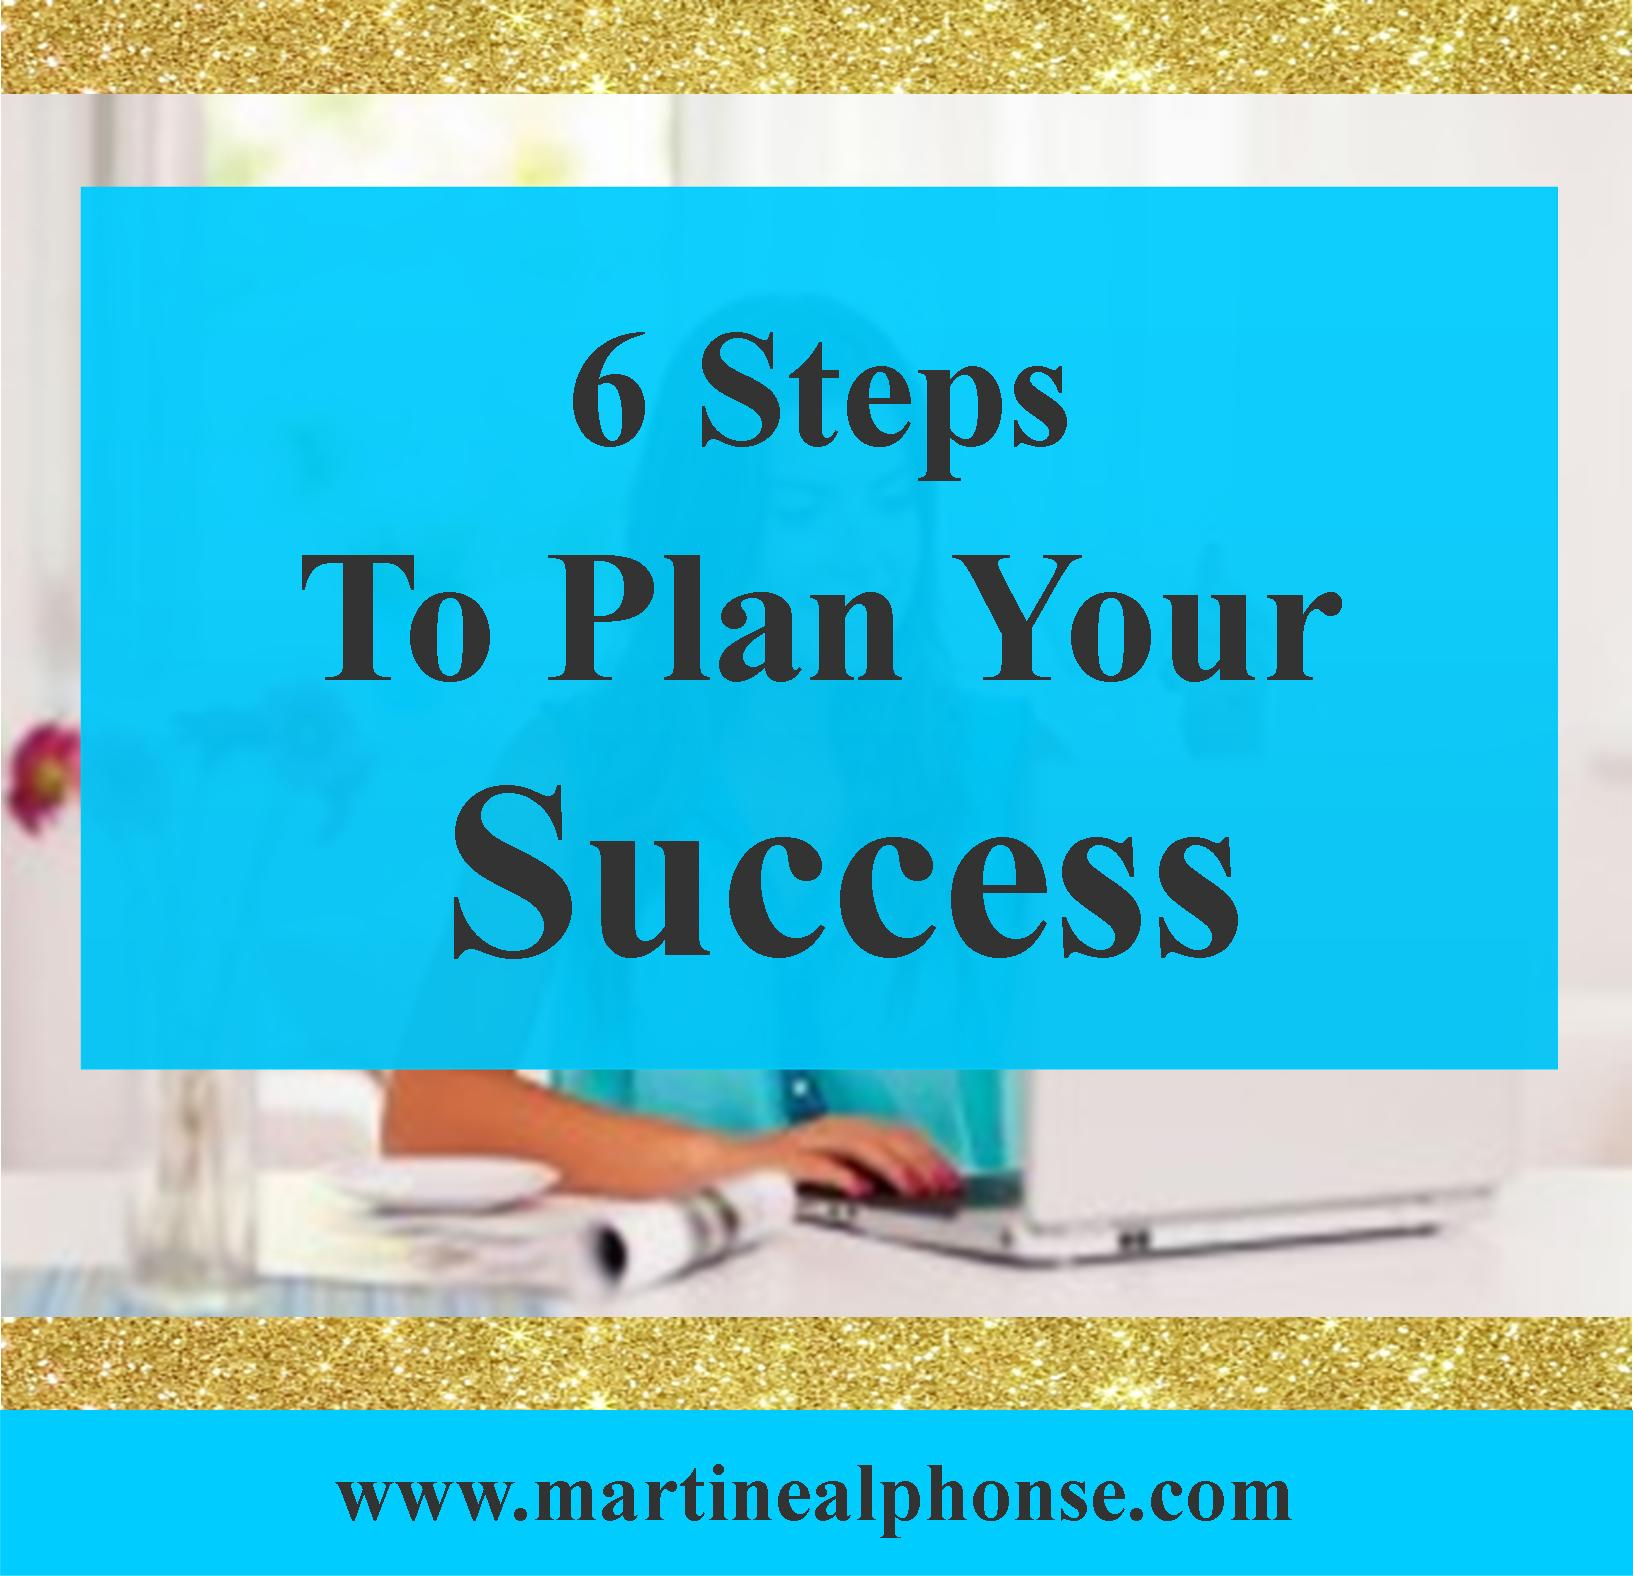 6 Steps To Plan Your Success